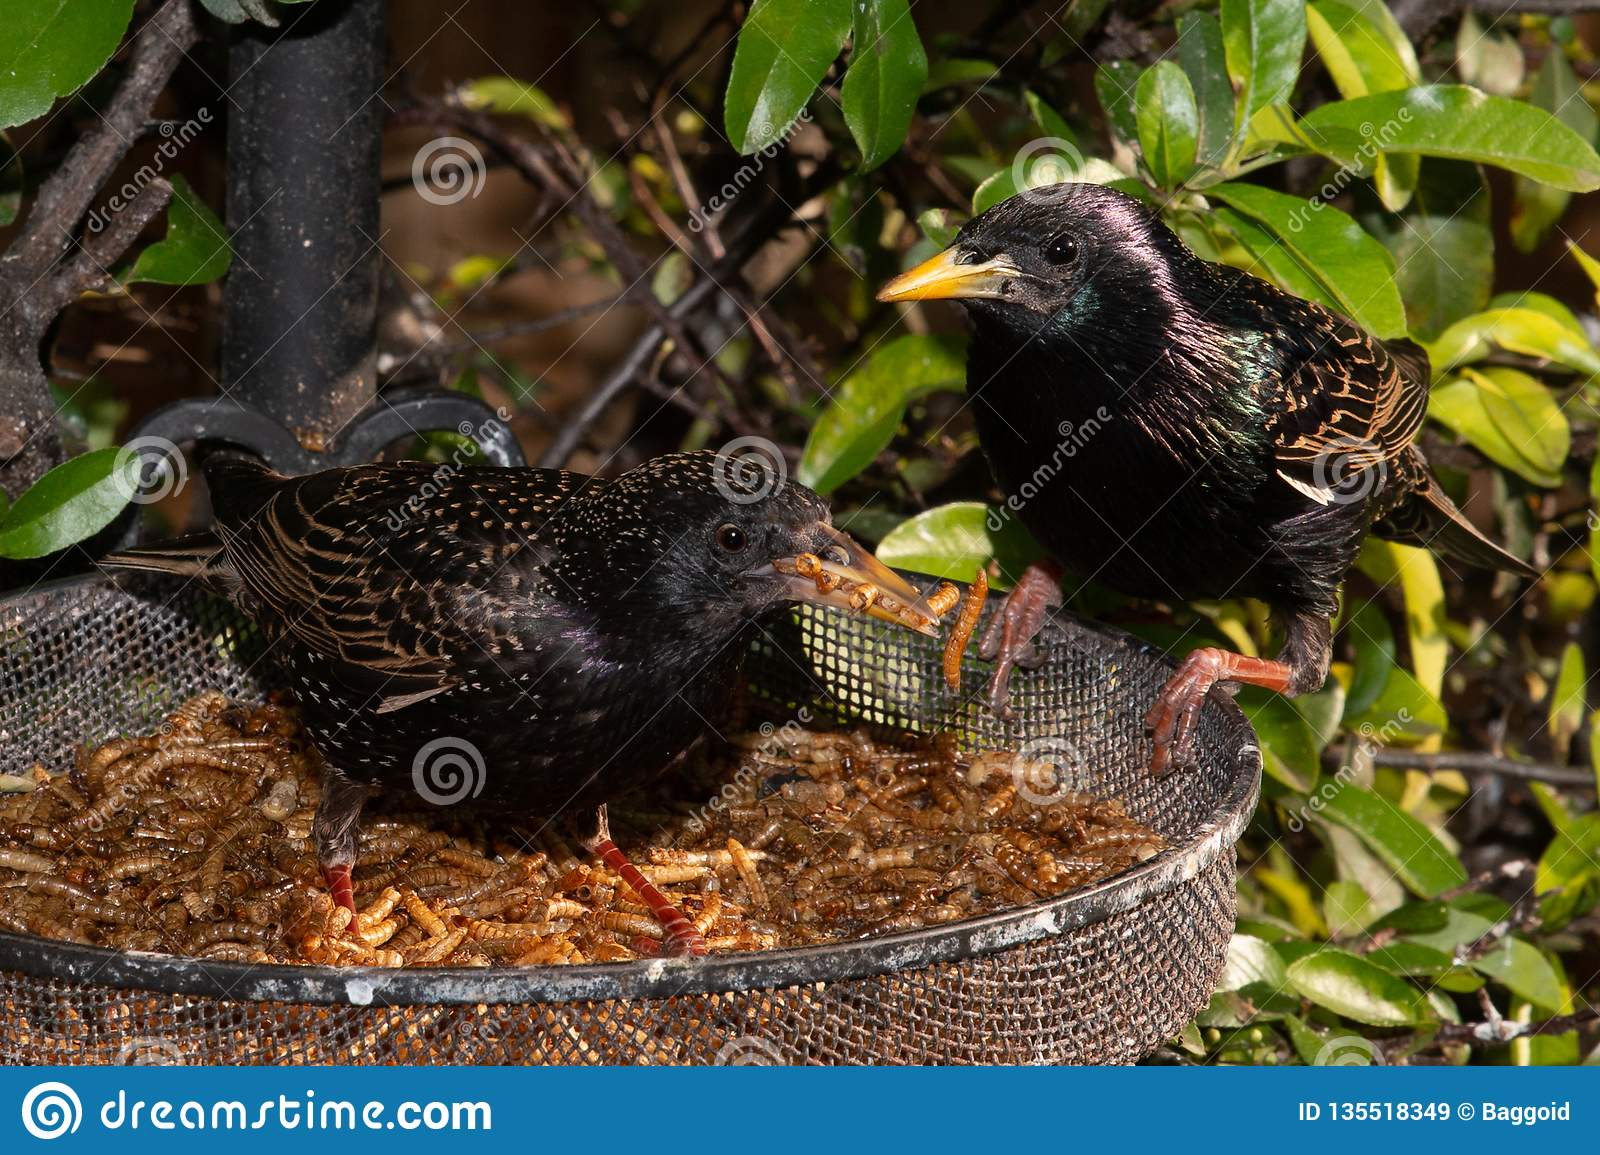 Starlings Taking a Quick Snack